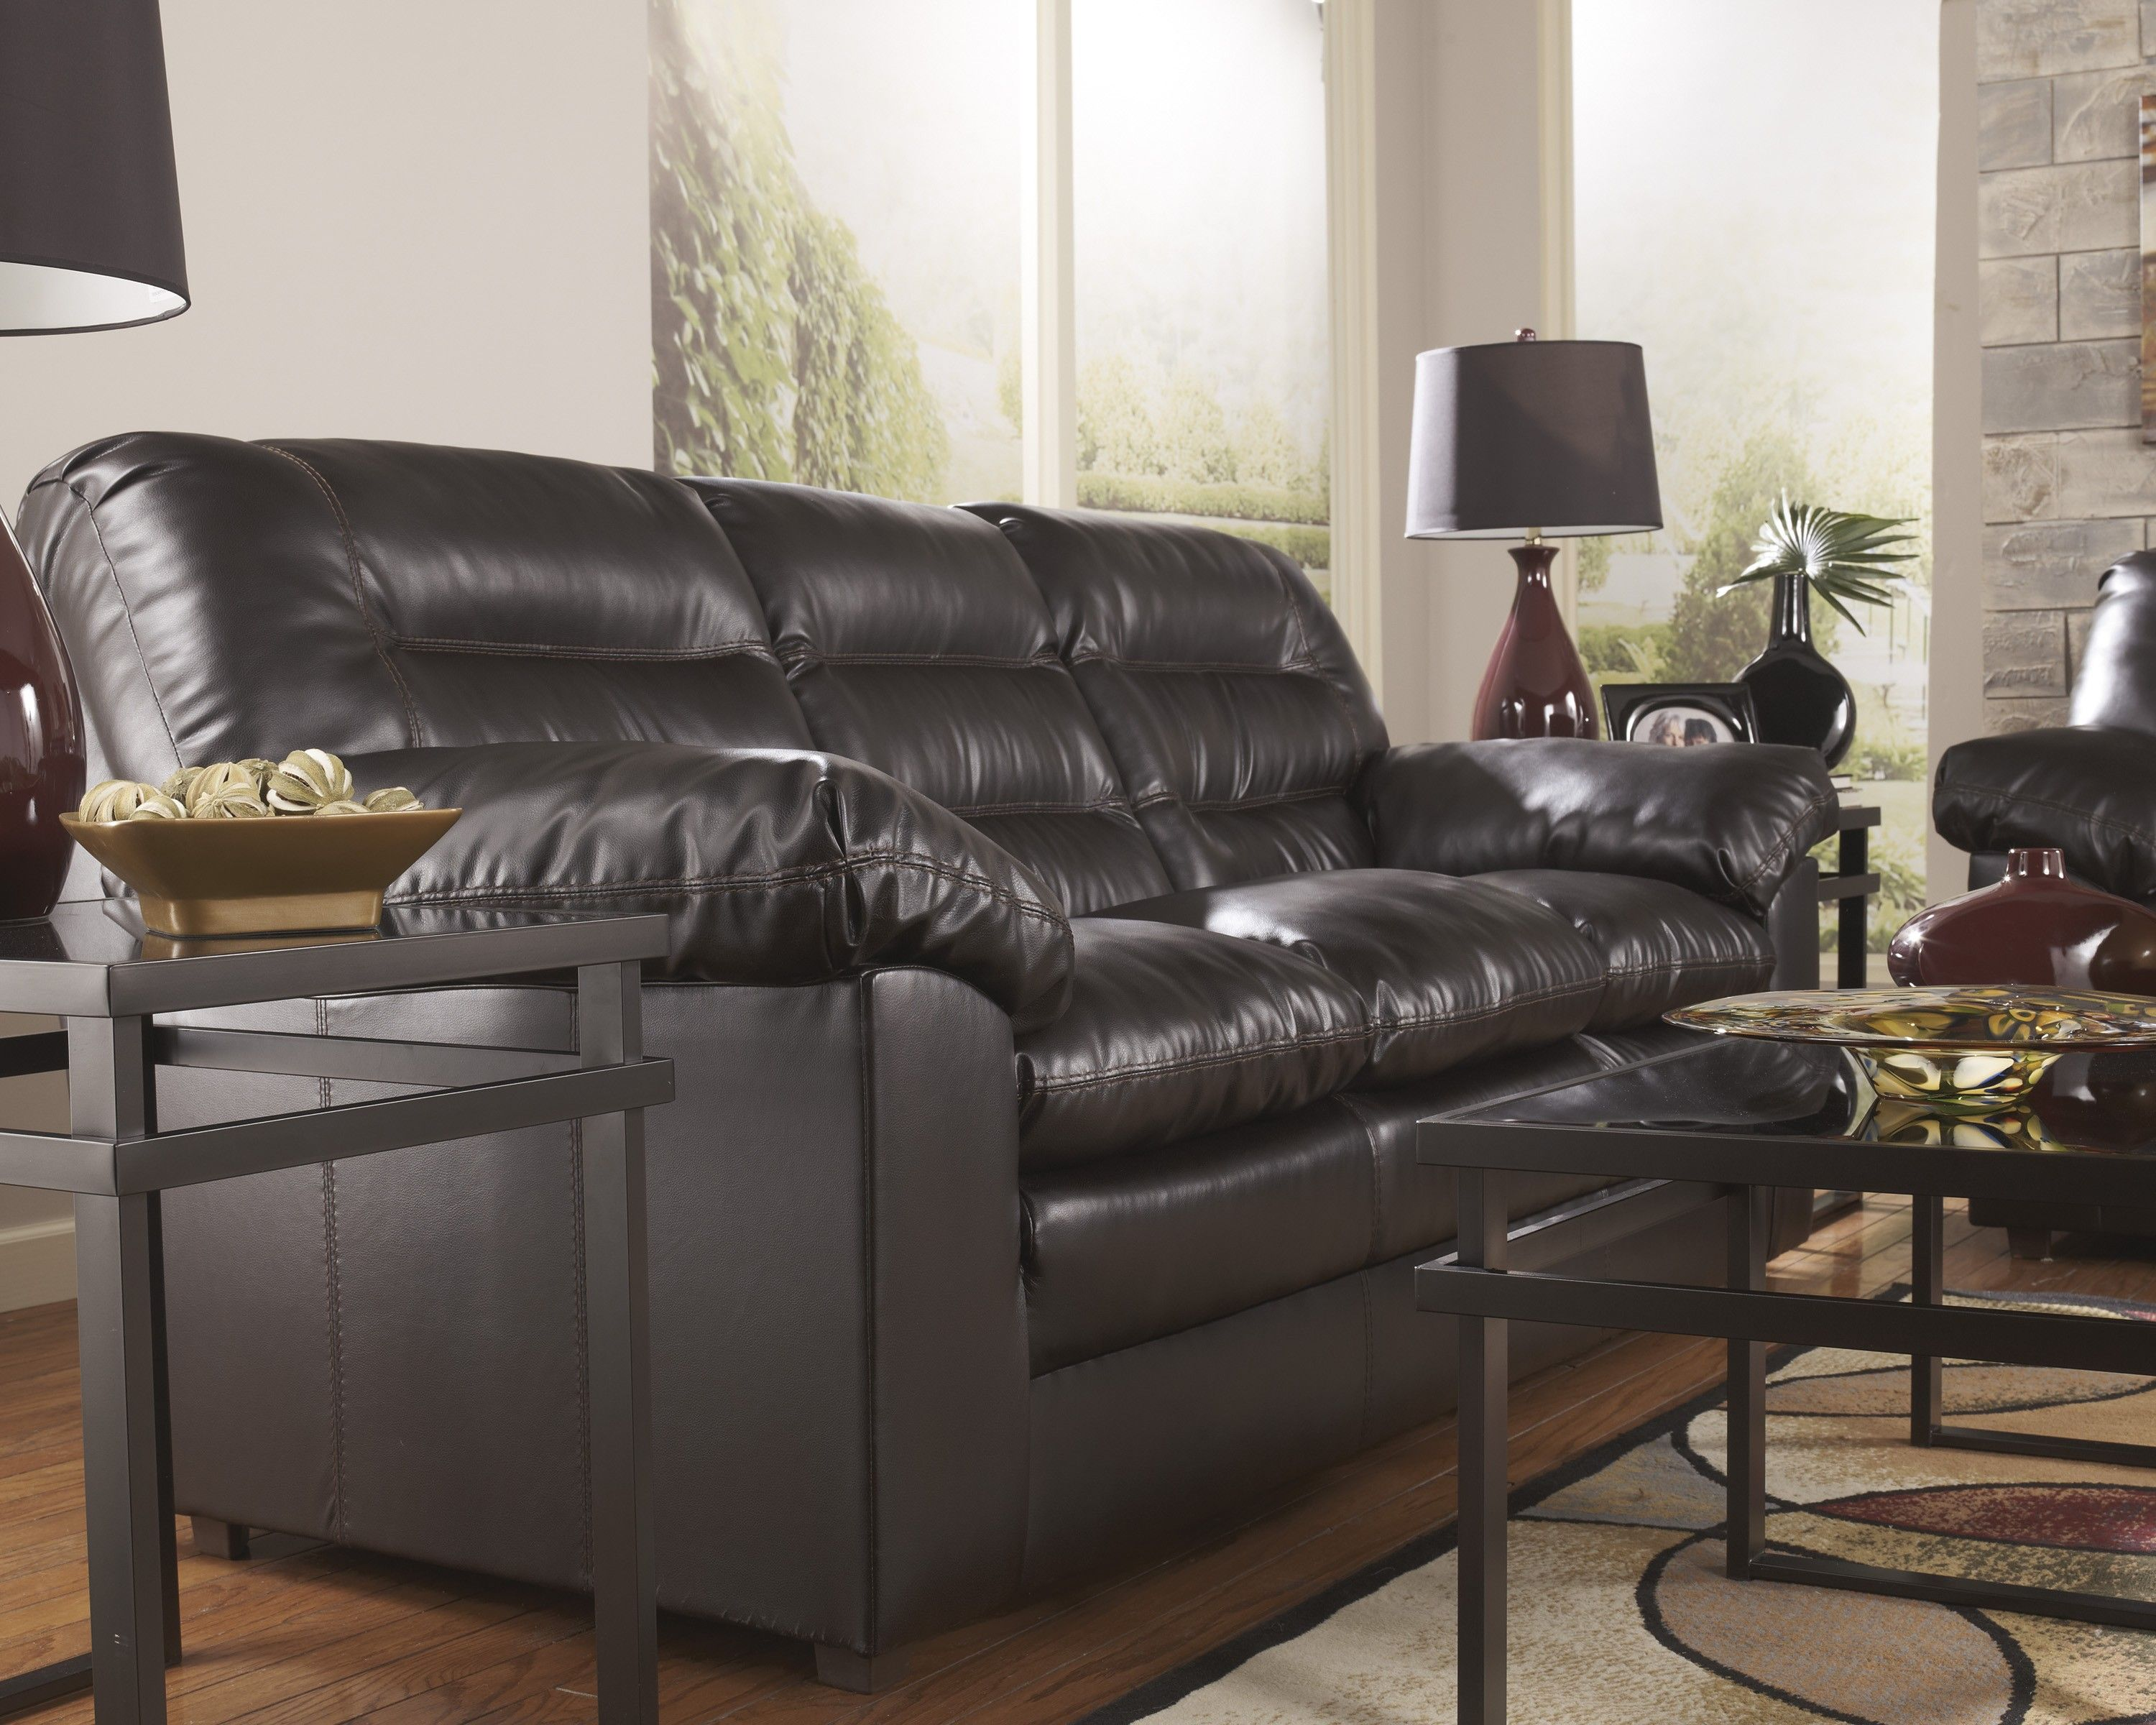 ashley furniture modern sofa tribeca leather cool couch good 28 in living room ideas with